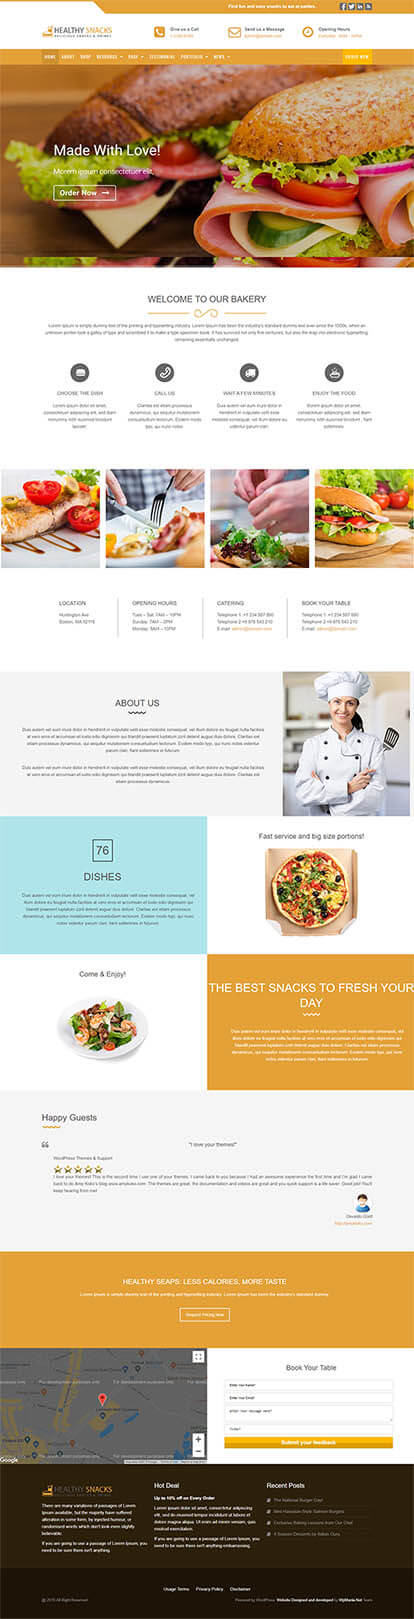 Healthy Snacks WORDPRESS THEME Full Demo